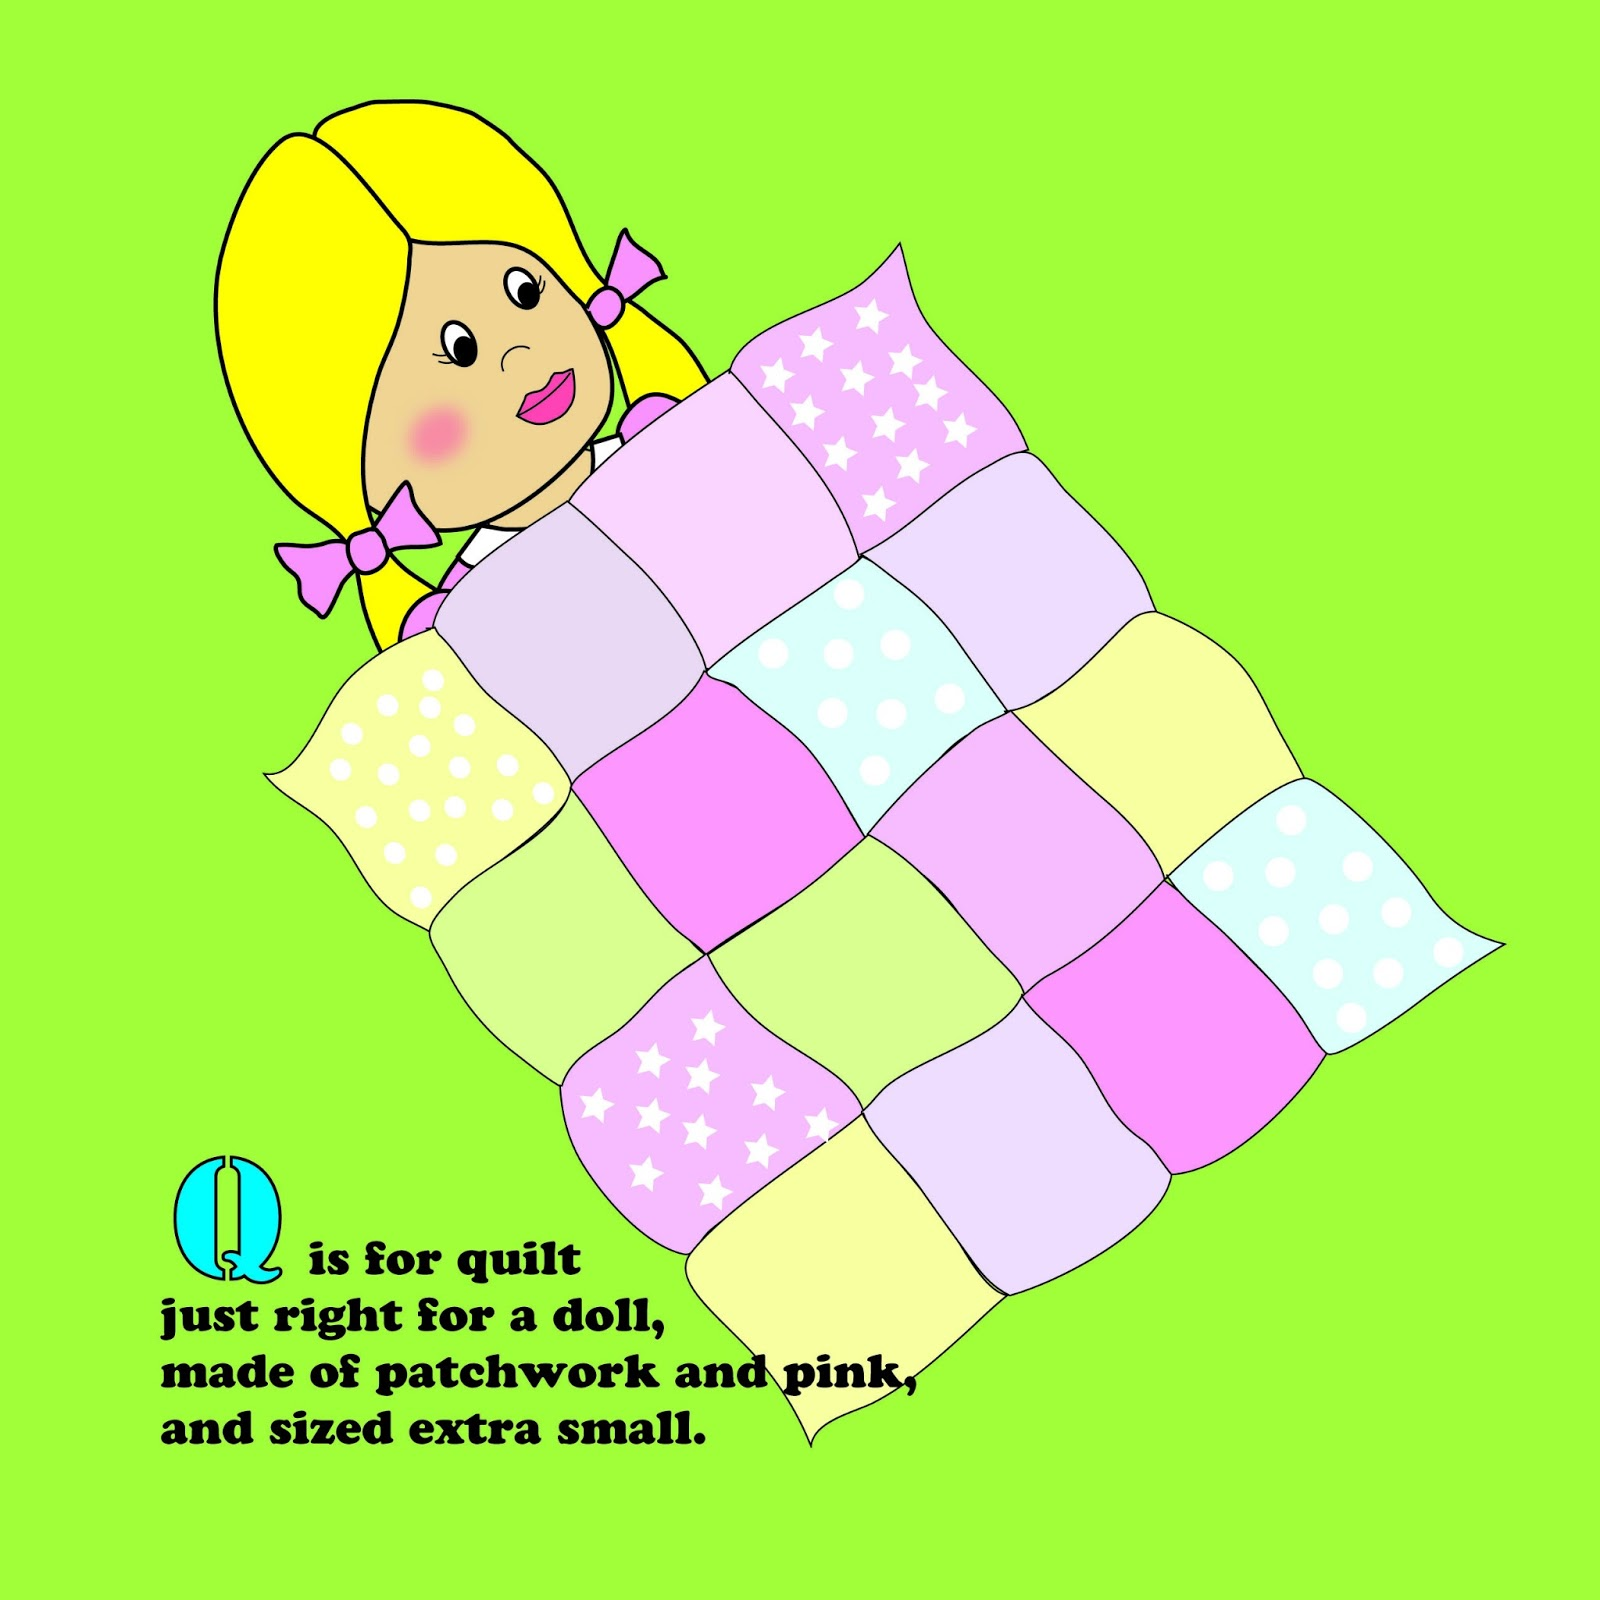 Q For Quilt & Q Is For Quilt Coloring Page Image Clipart Images ... : q is for quilt - Adamdwight.com